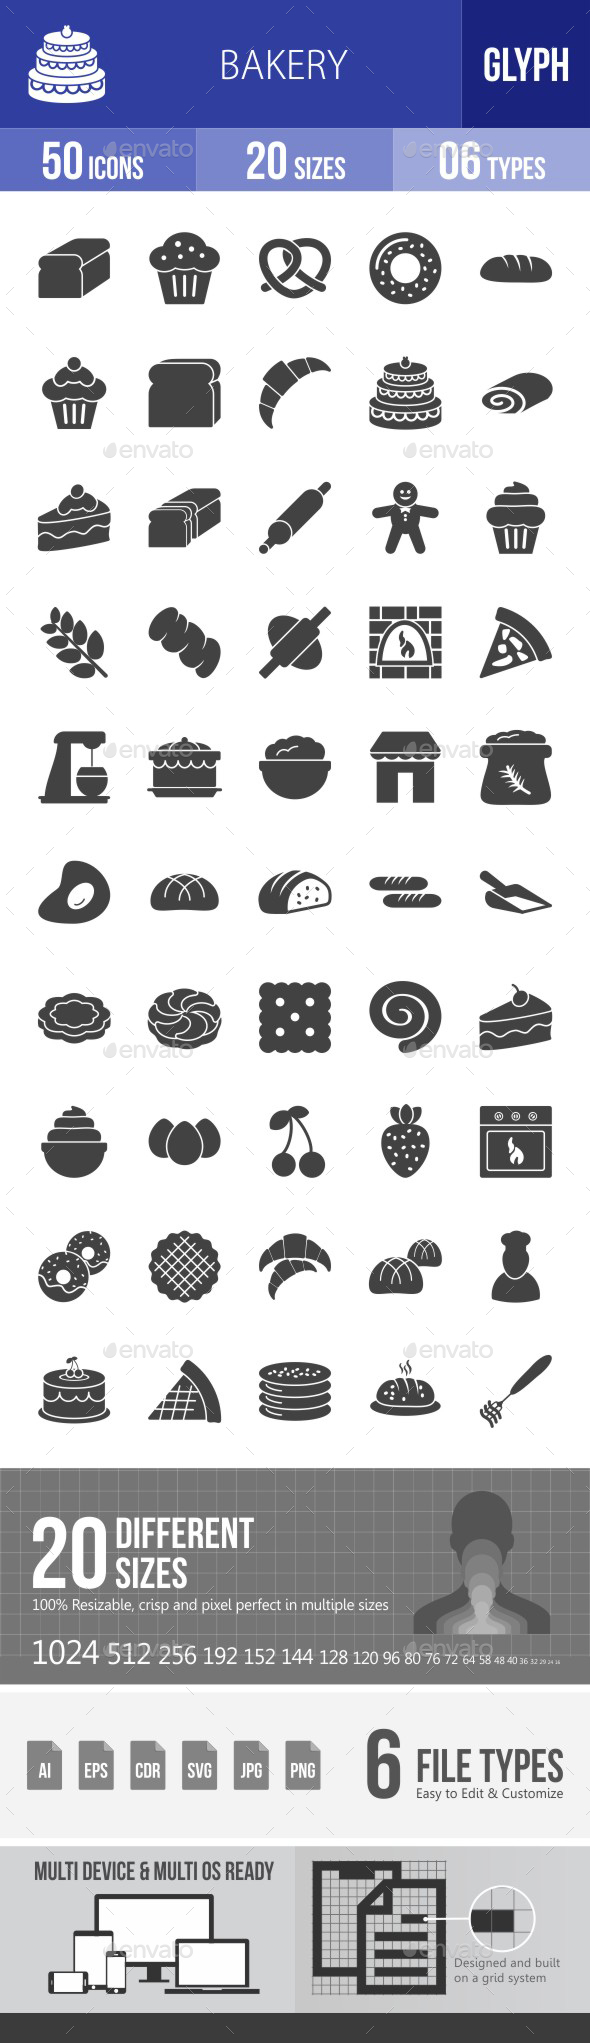 Bakery Glyph Icons - Icons